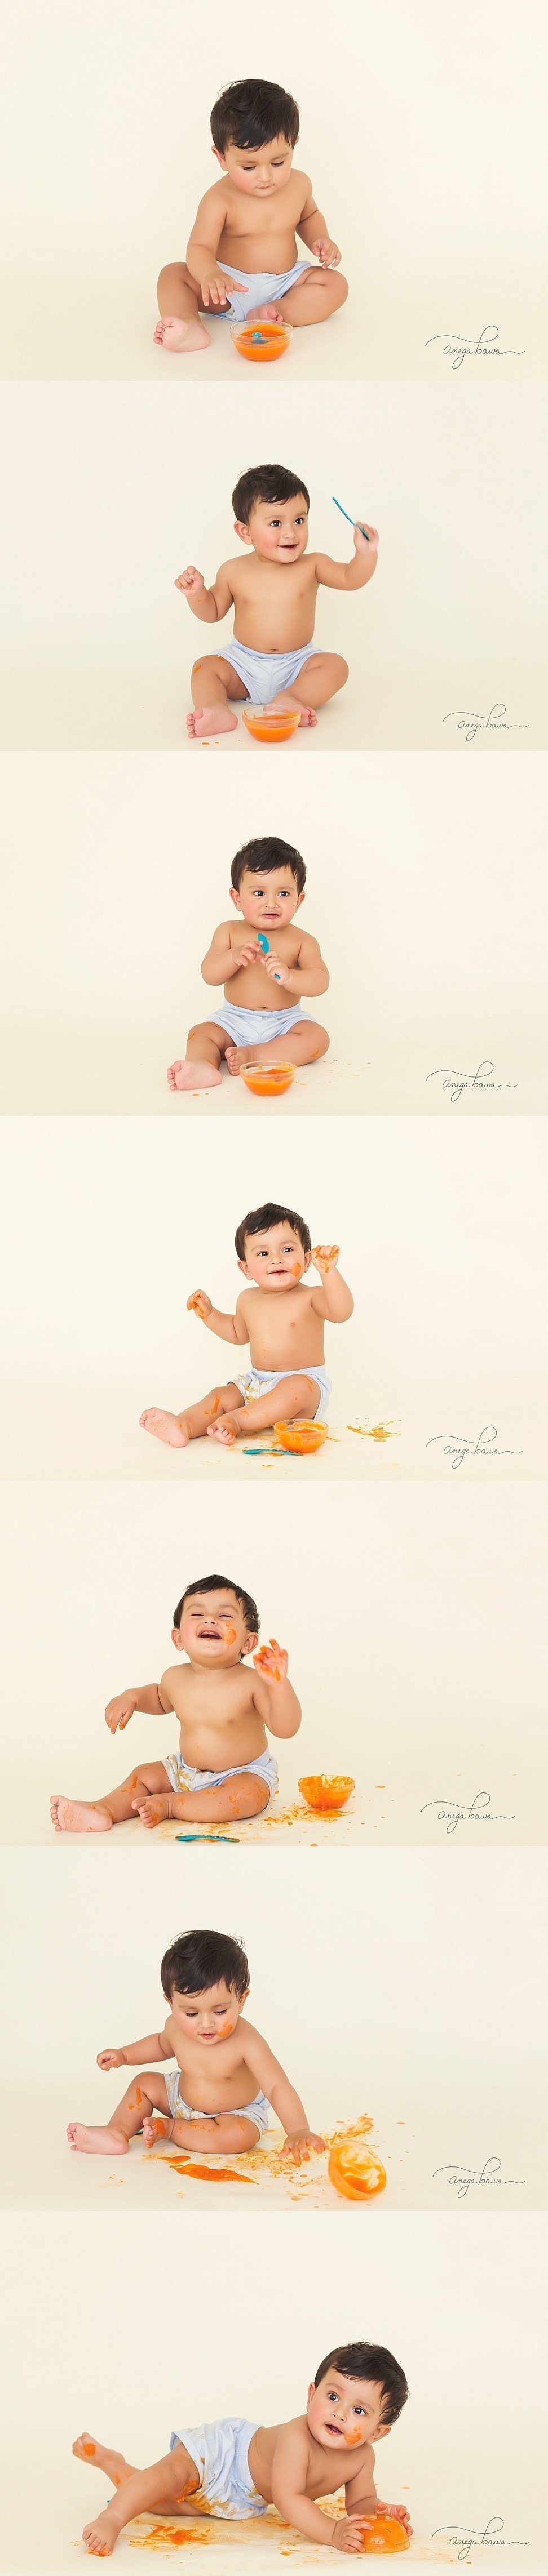 sitter_session_081-8-months-boy-food-smash_baby_child